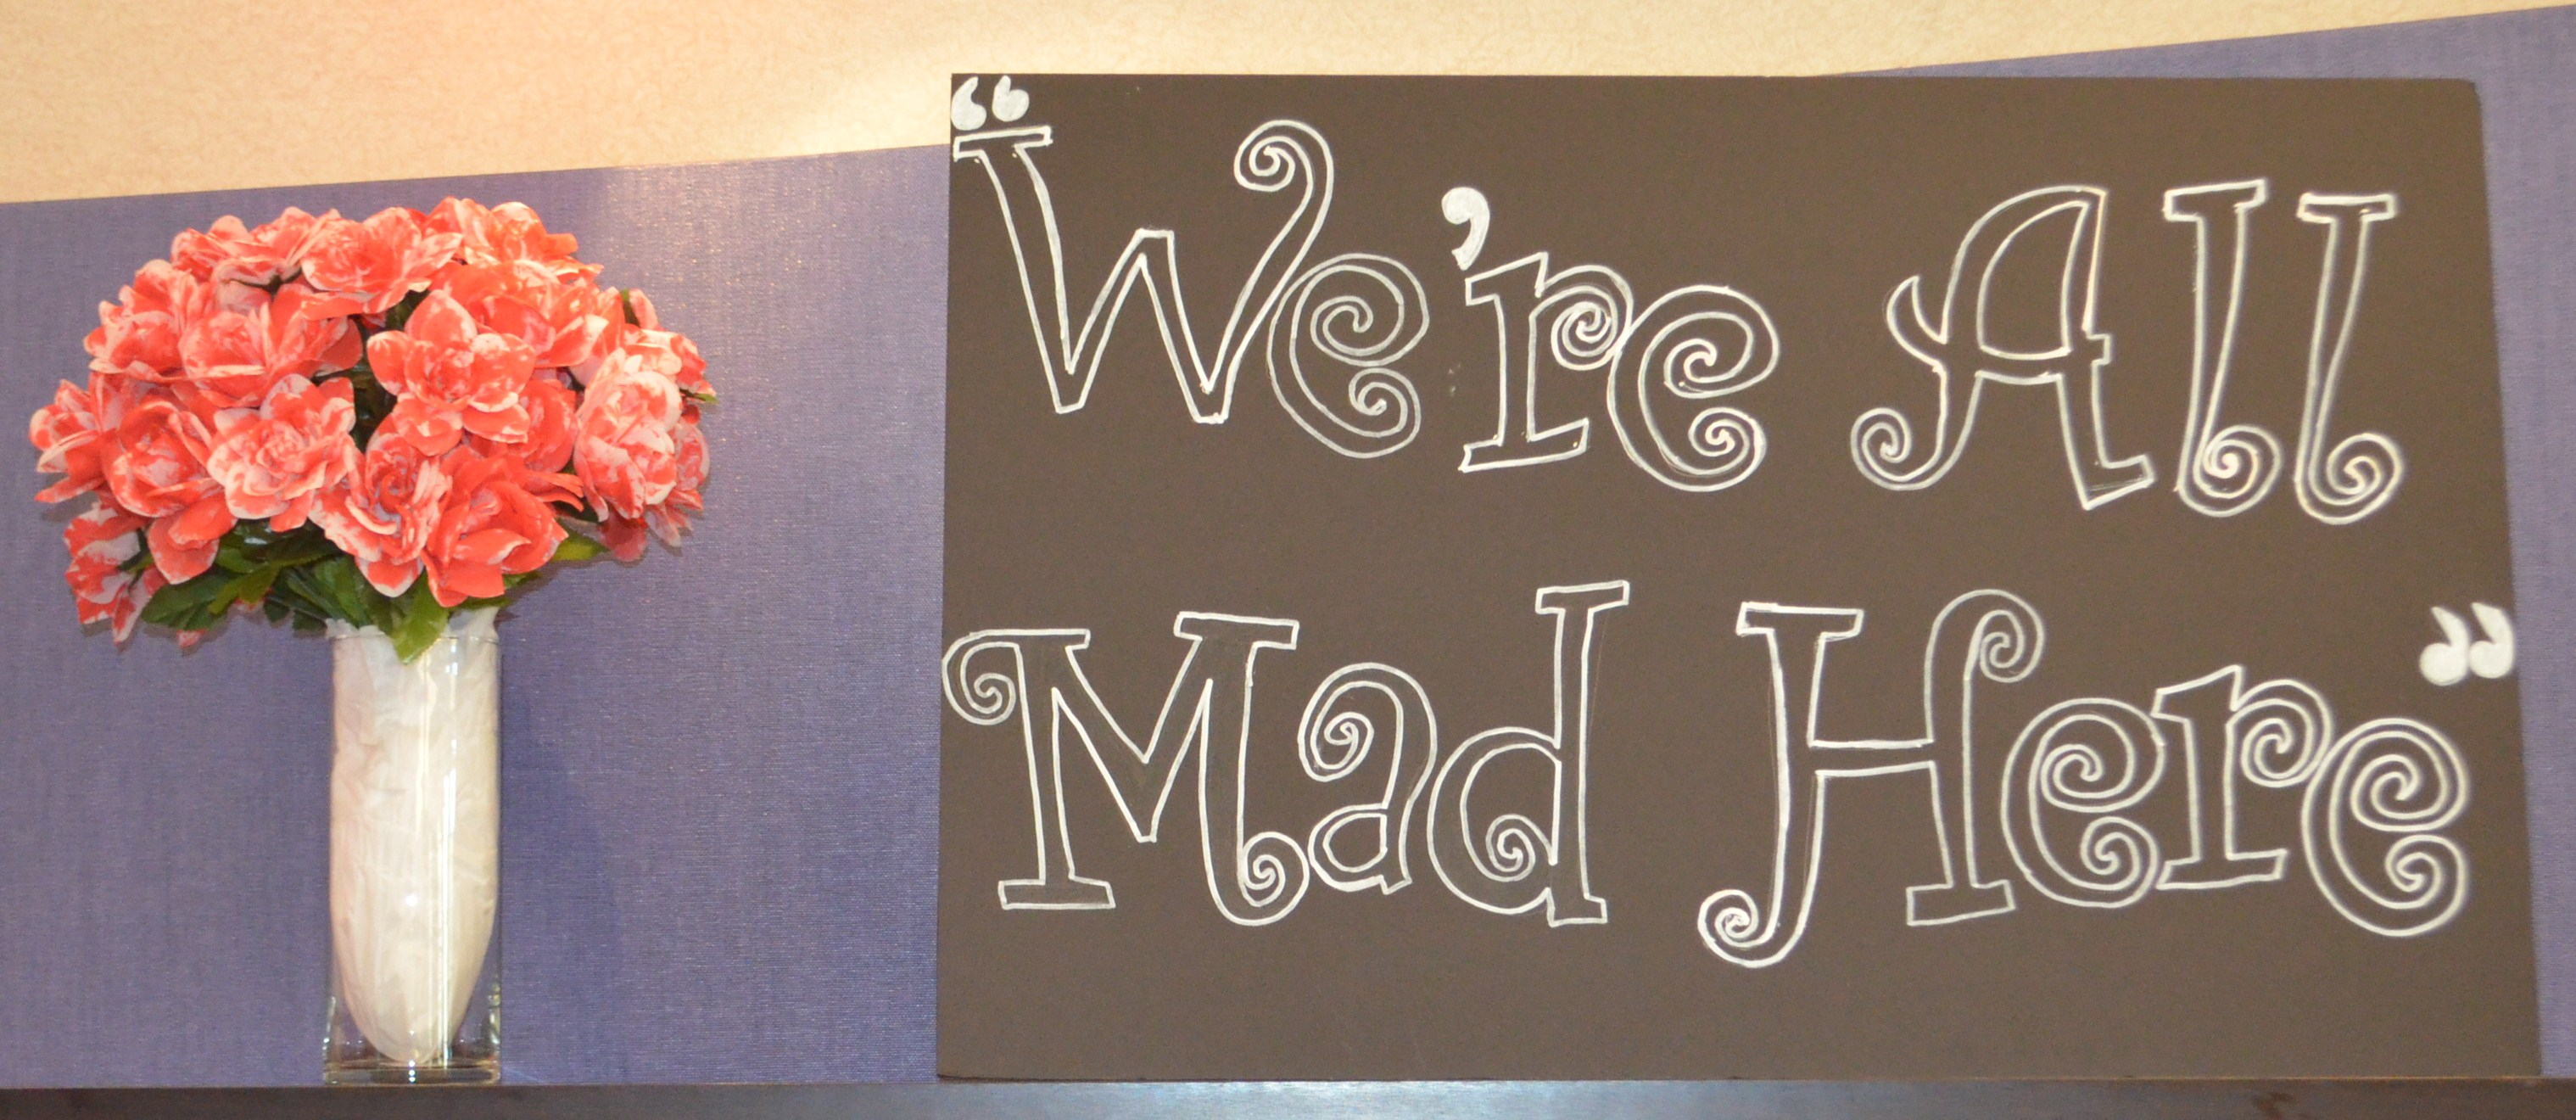 2015-06-06 WE RE ALL MAD HERE